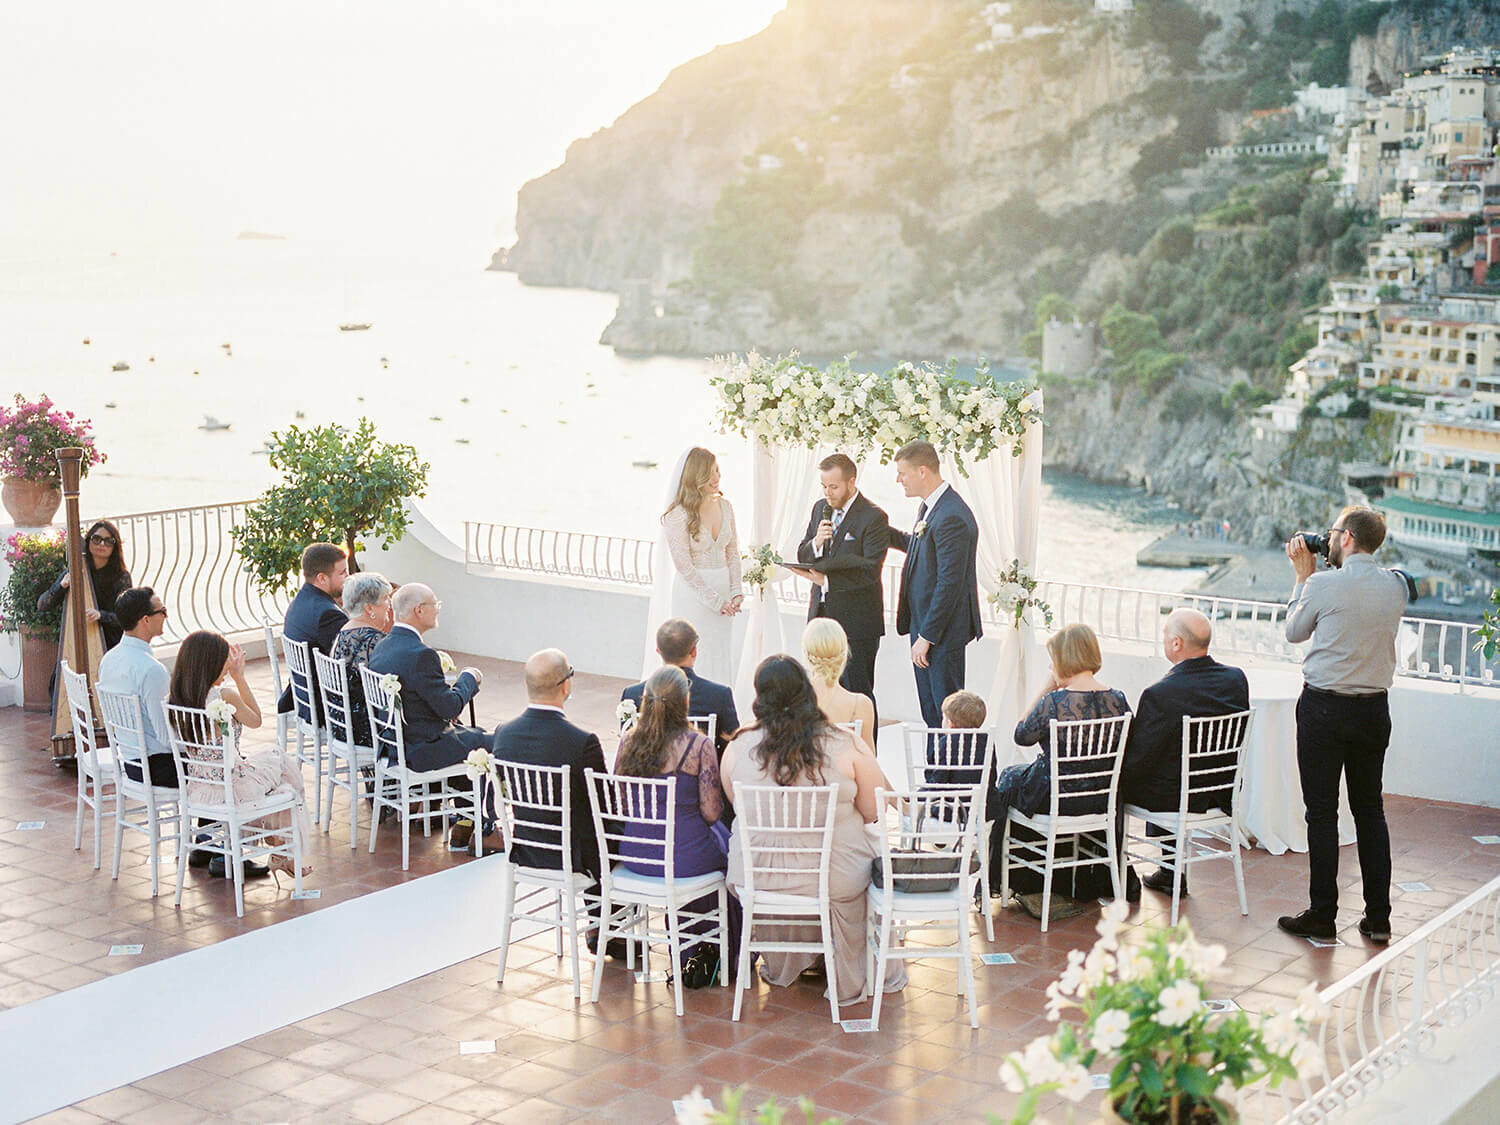 Positano Sunset Wedding ceremony at Hotel Marincanto